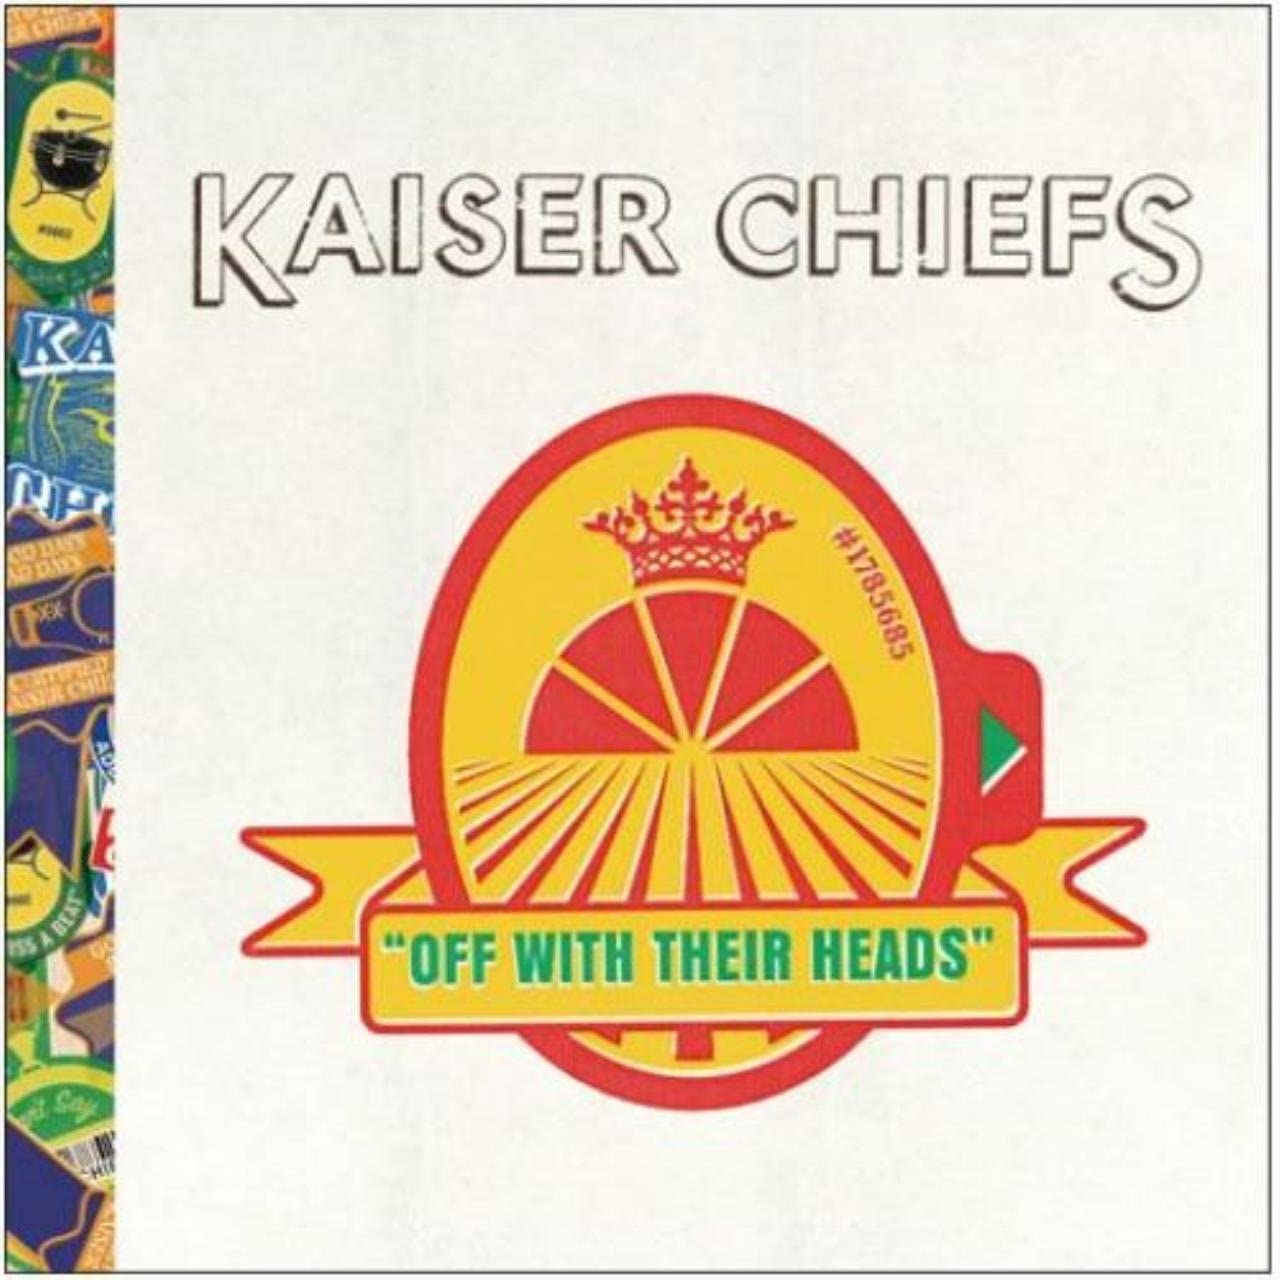 KAISER CHIEFS - OFF WITH THEIR HEADS -2CD LIM- ED- (CD)